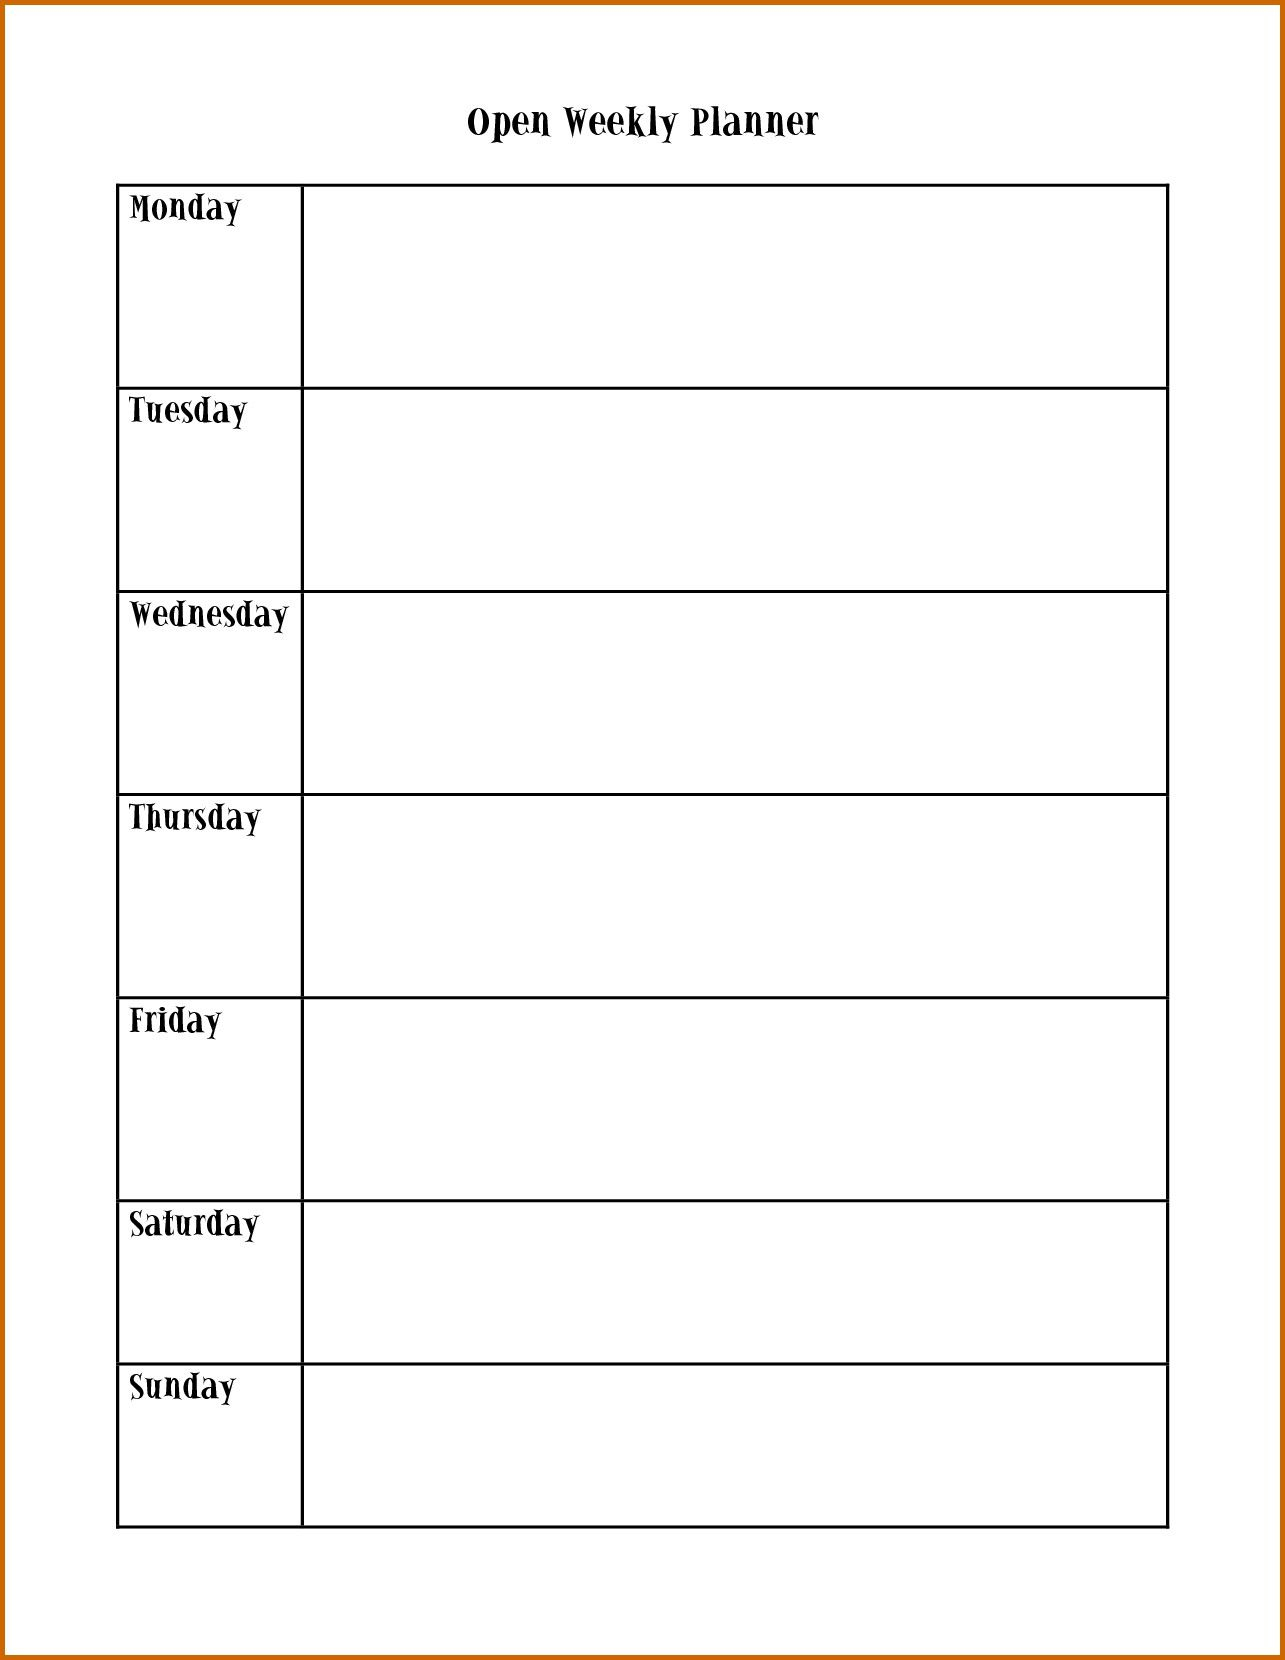 Image Result For Monday Through Friday Calendar Template for Monday Through Friday Calendar Template Excel